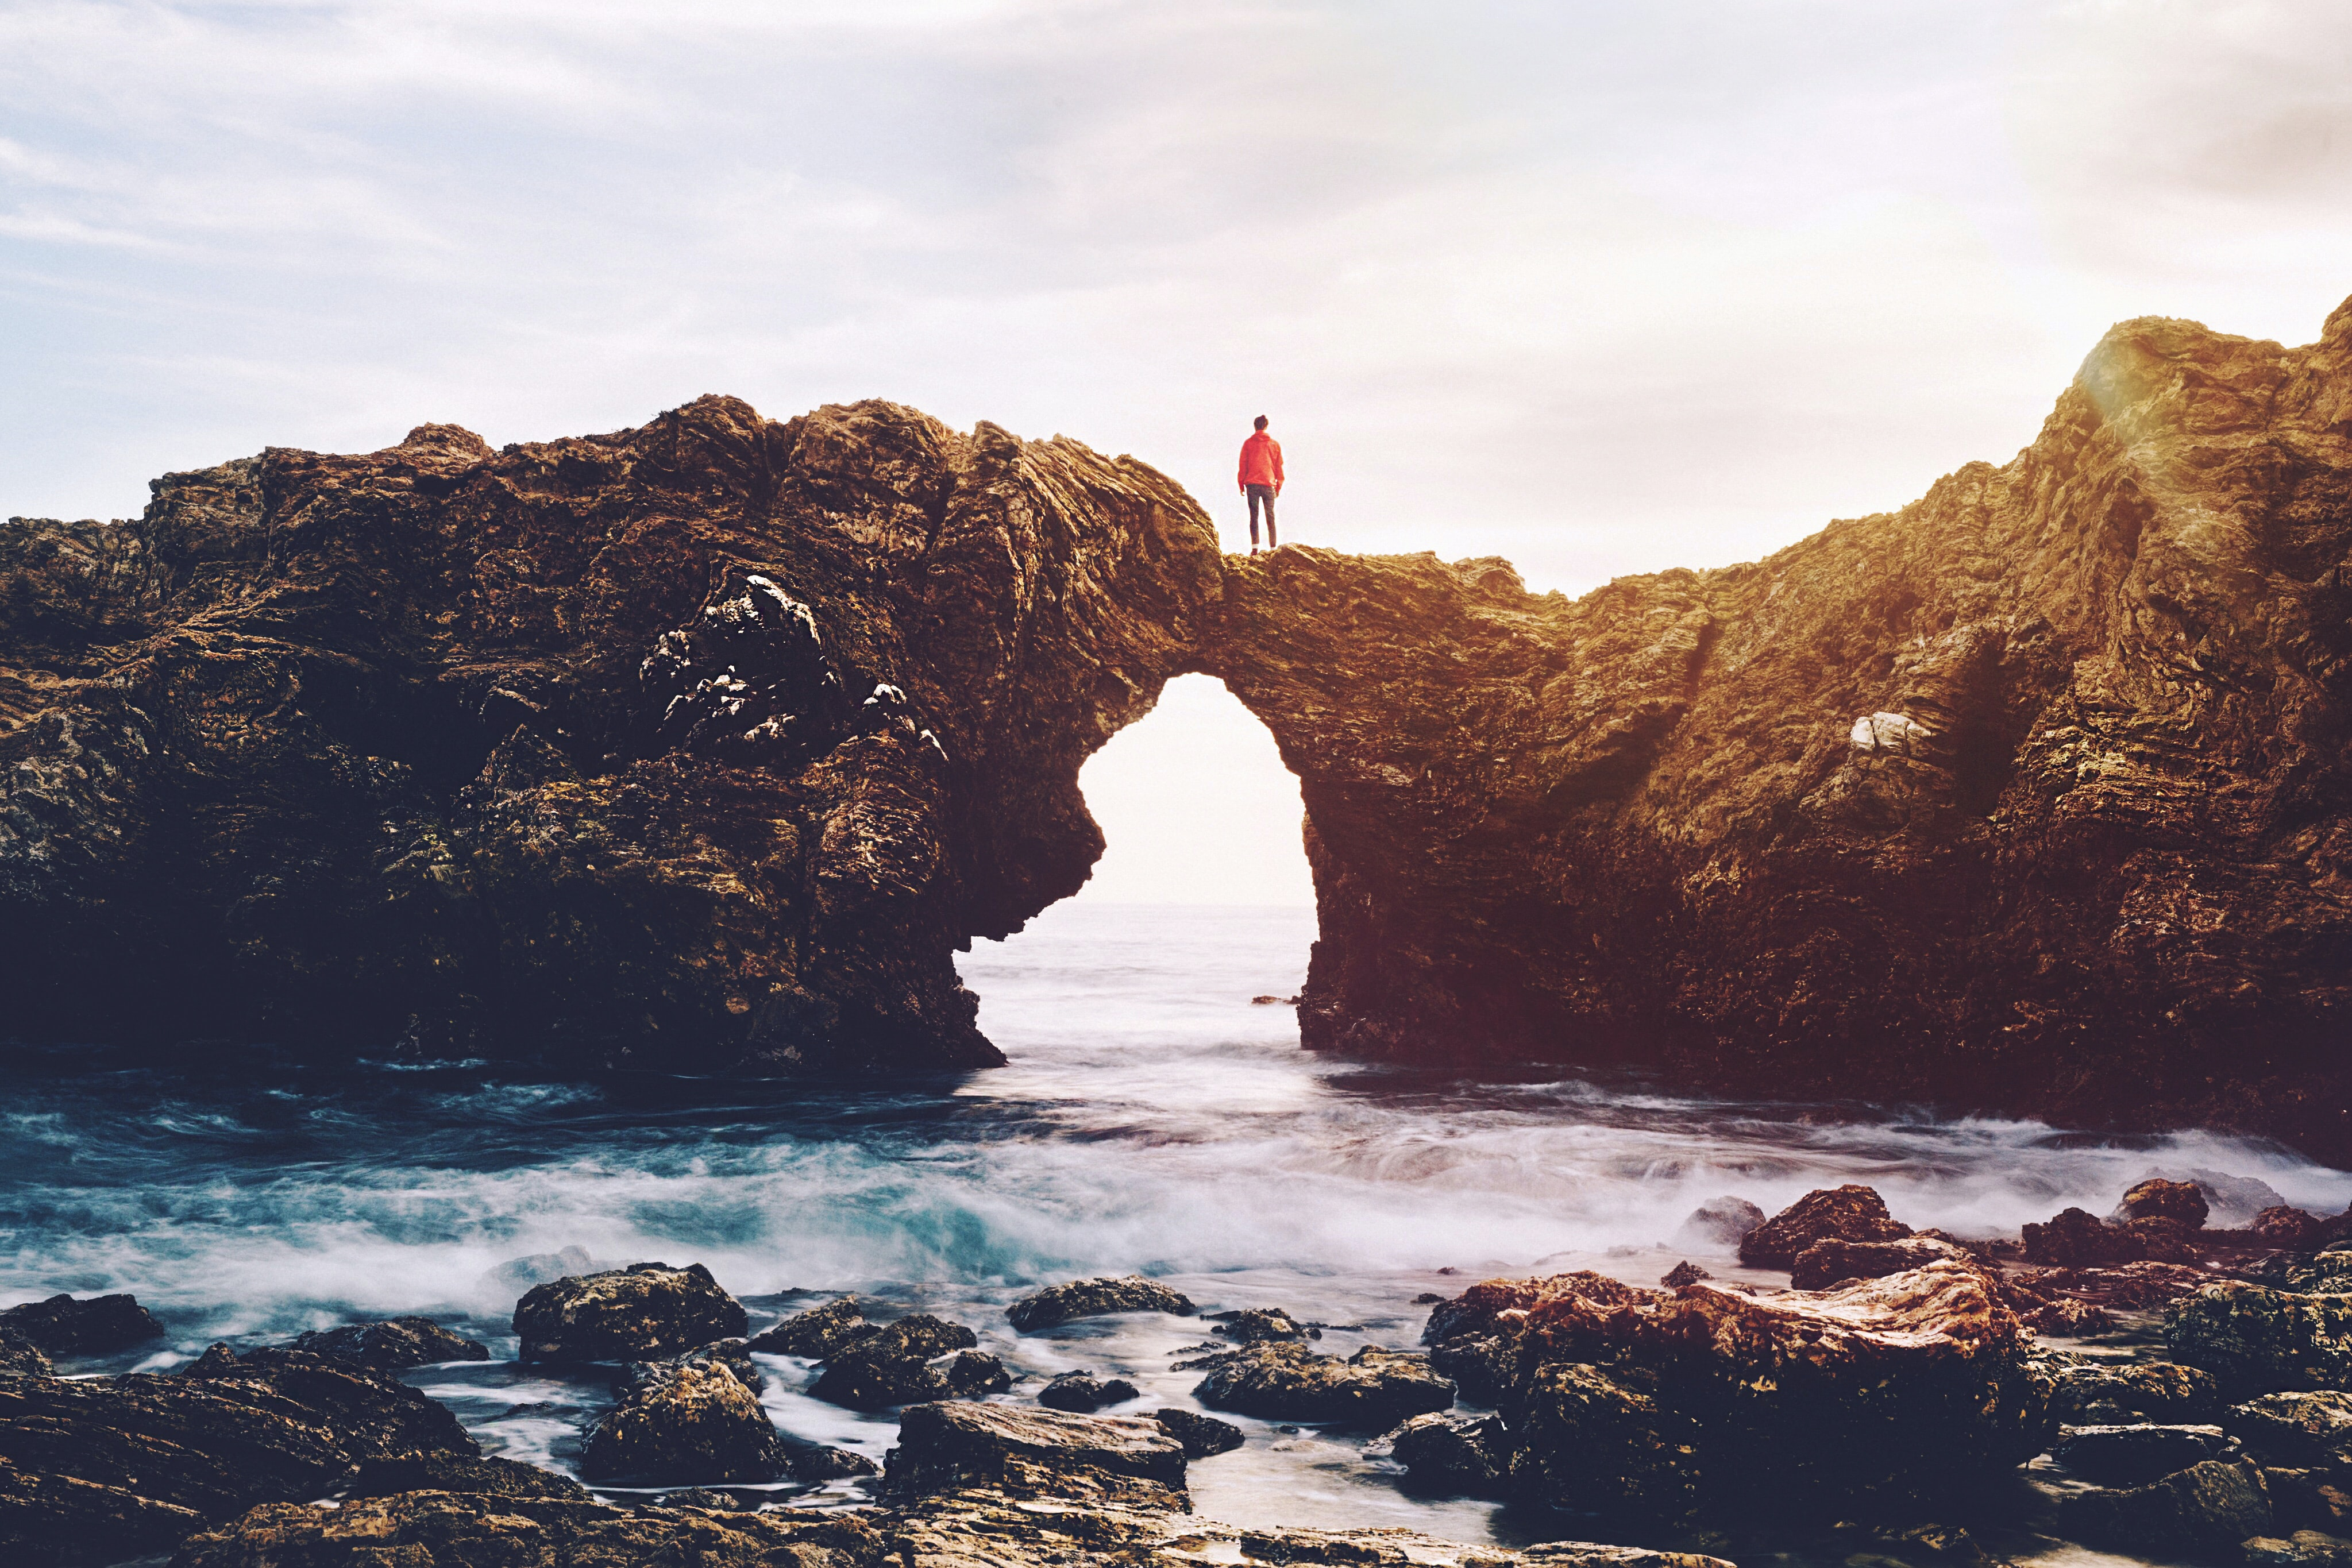 A breathtaking shot of a person standing on an arch created by a jagged cliff over water